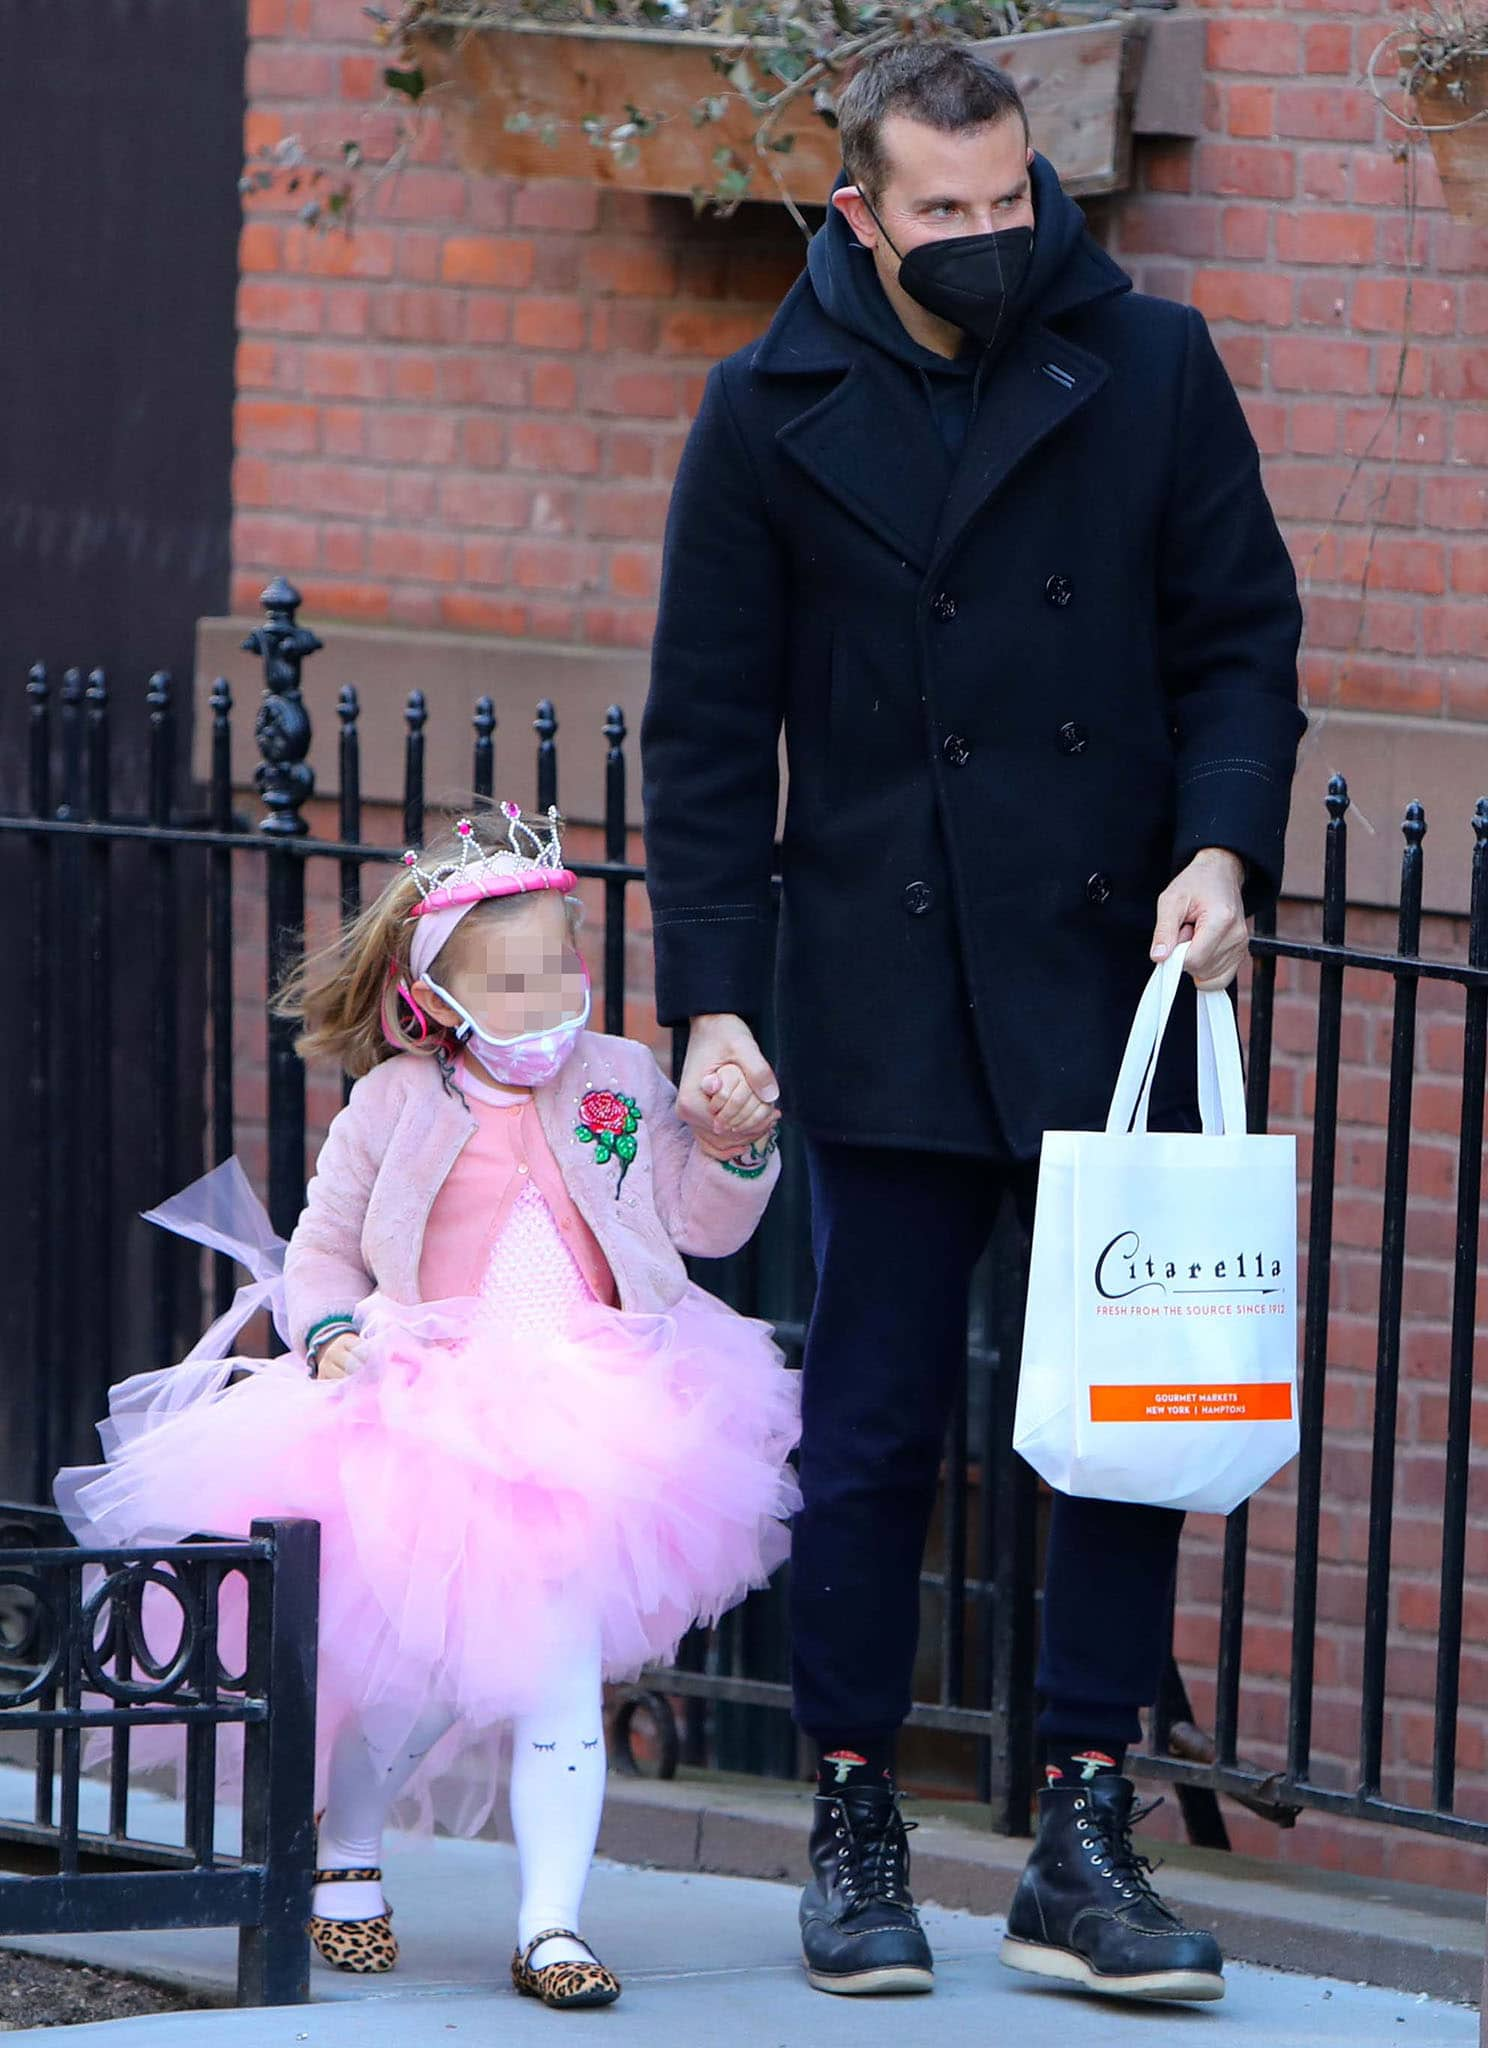 Bradley Cooper wears a black pea coat as he holds hands with his daughter